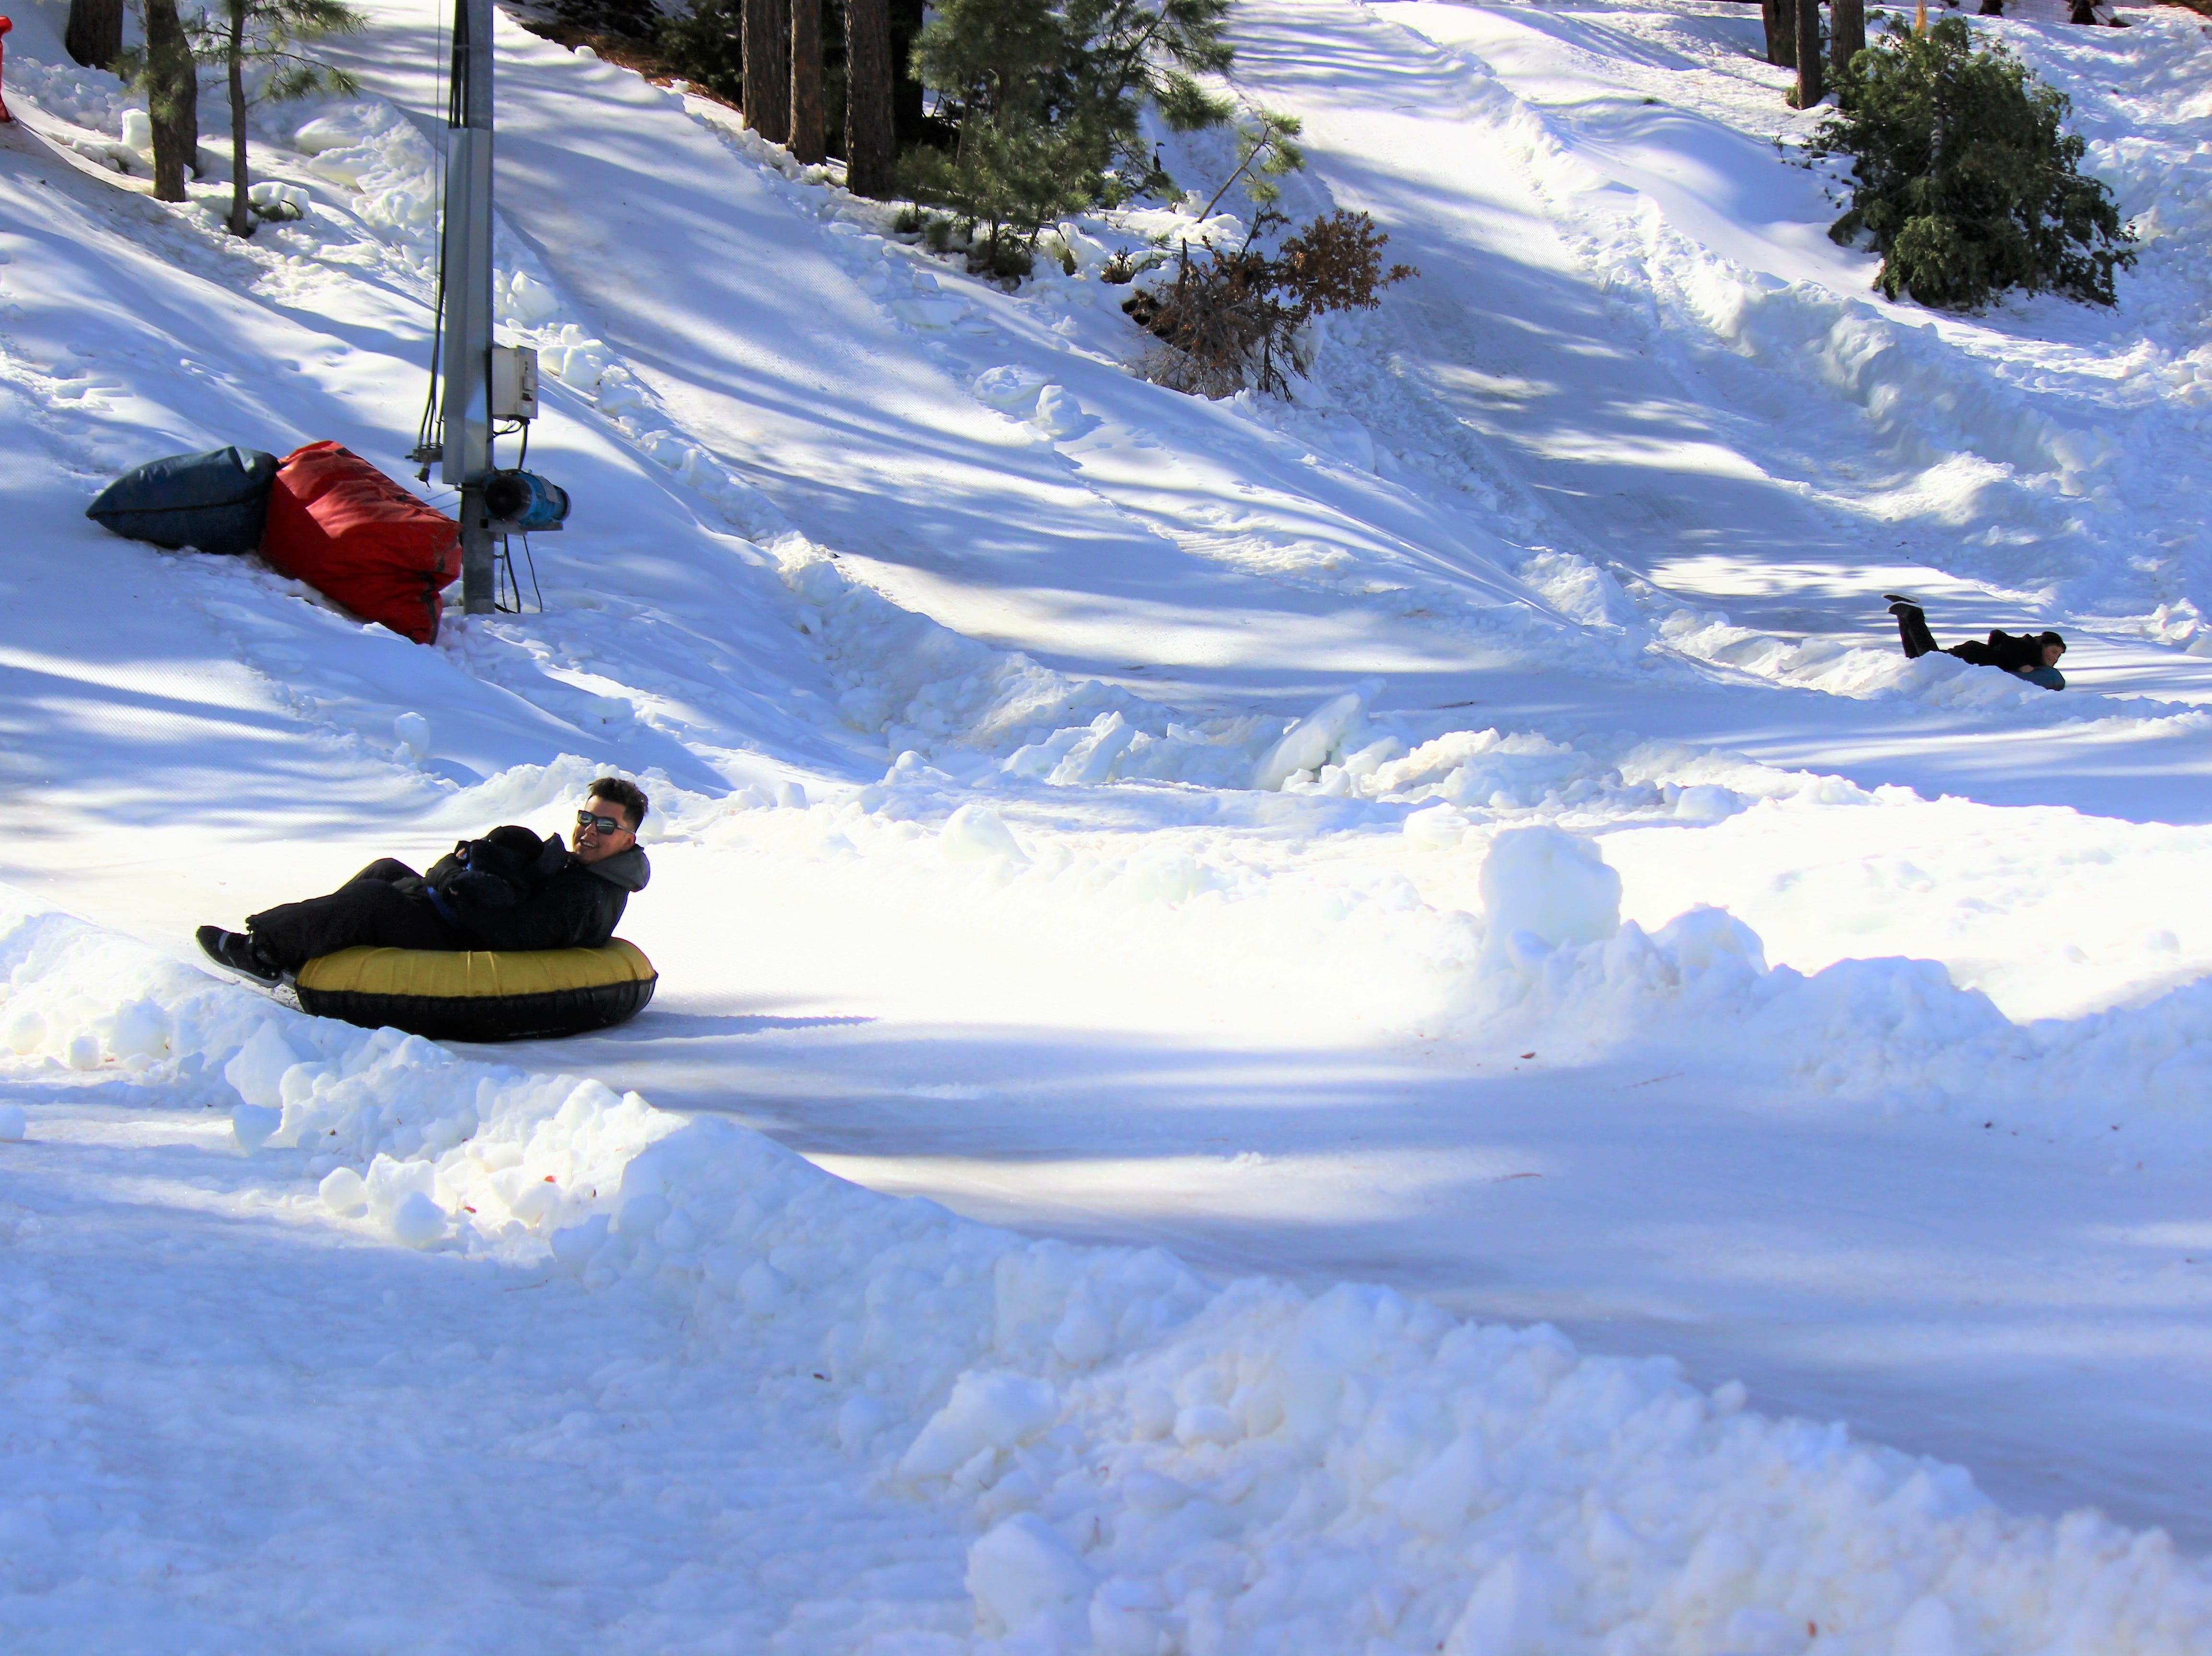 Even adults have fun snow tubing. The man is having a blast as he zooms down the hill on a snow tube.